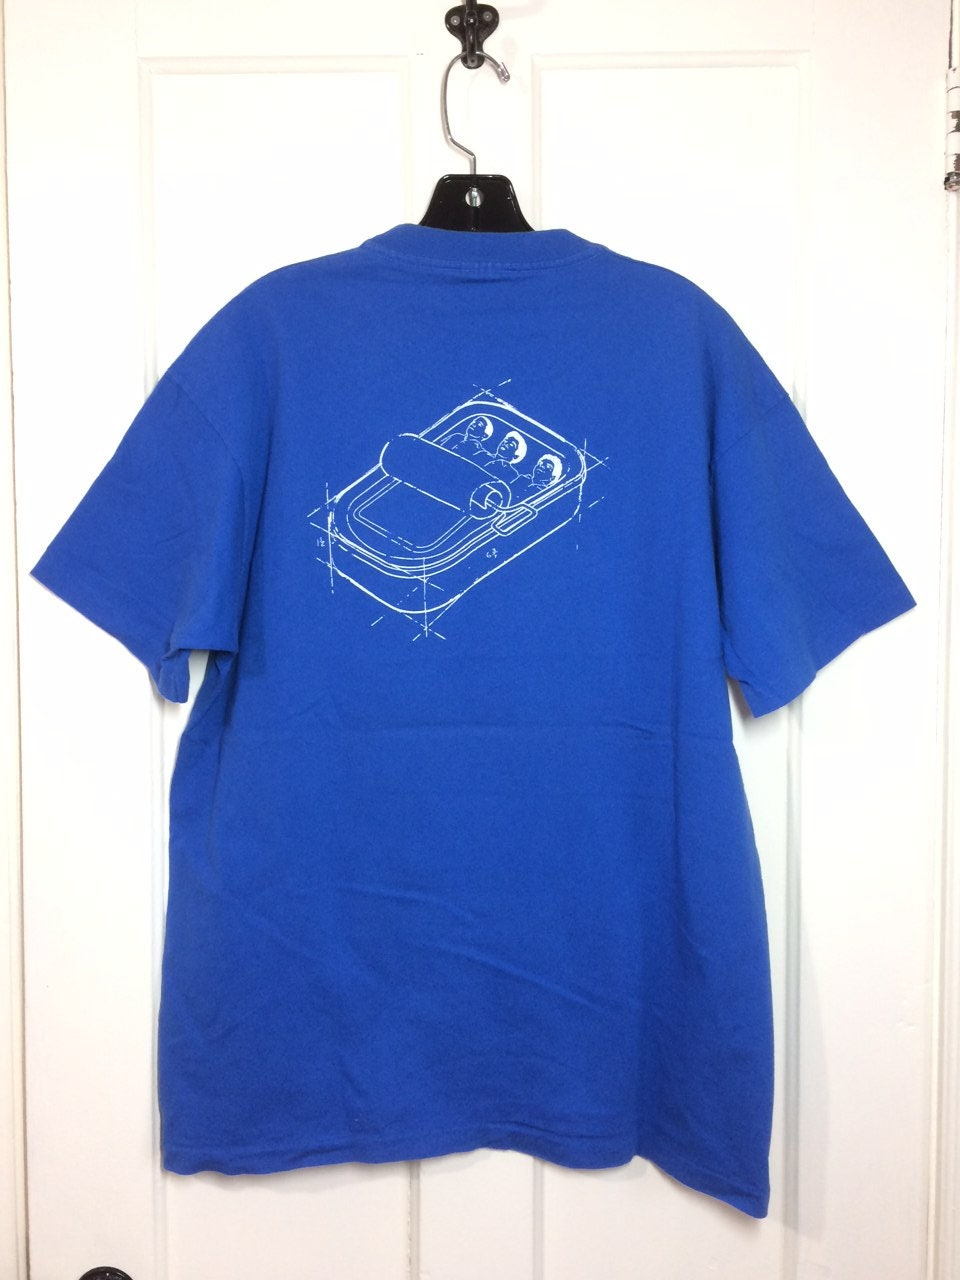 1990s Beastie Boys Hello Nasty T Shirt Looks Size Xl 22x28 5 Blue